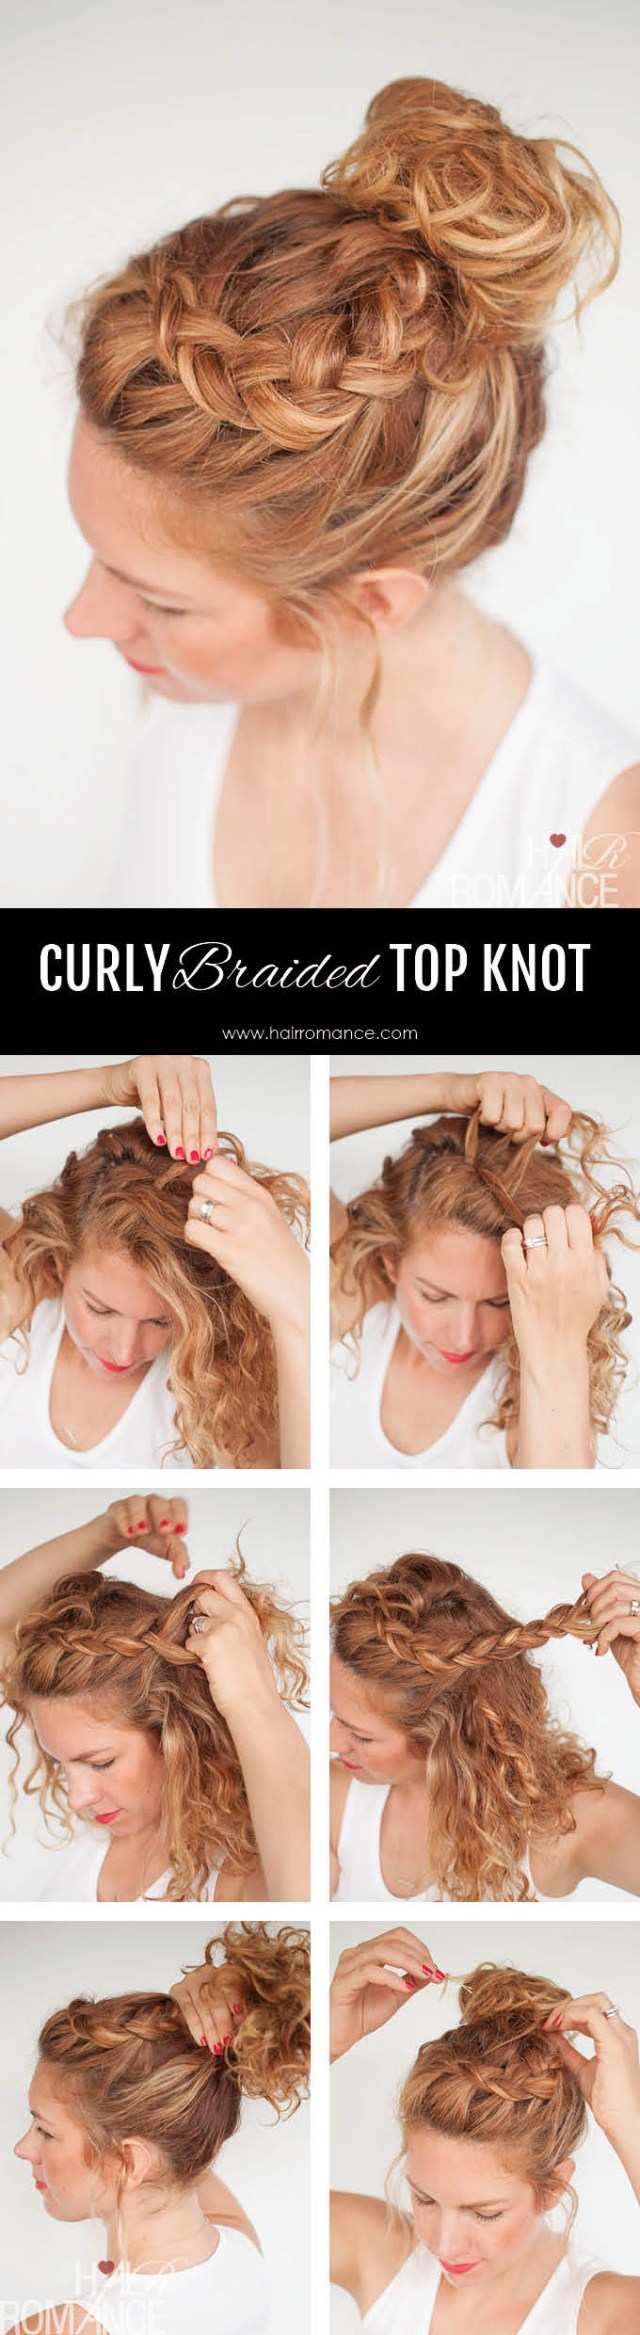 everyday curly hairstyles - curly braided top knot hairstyle